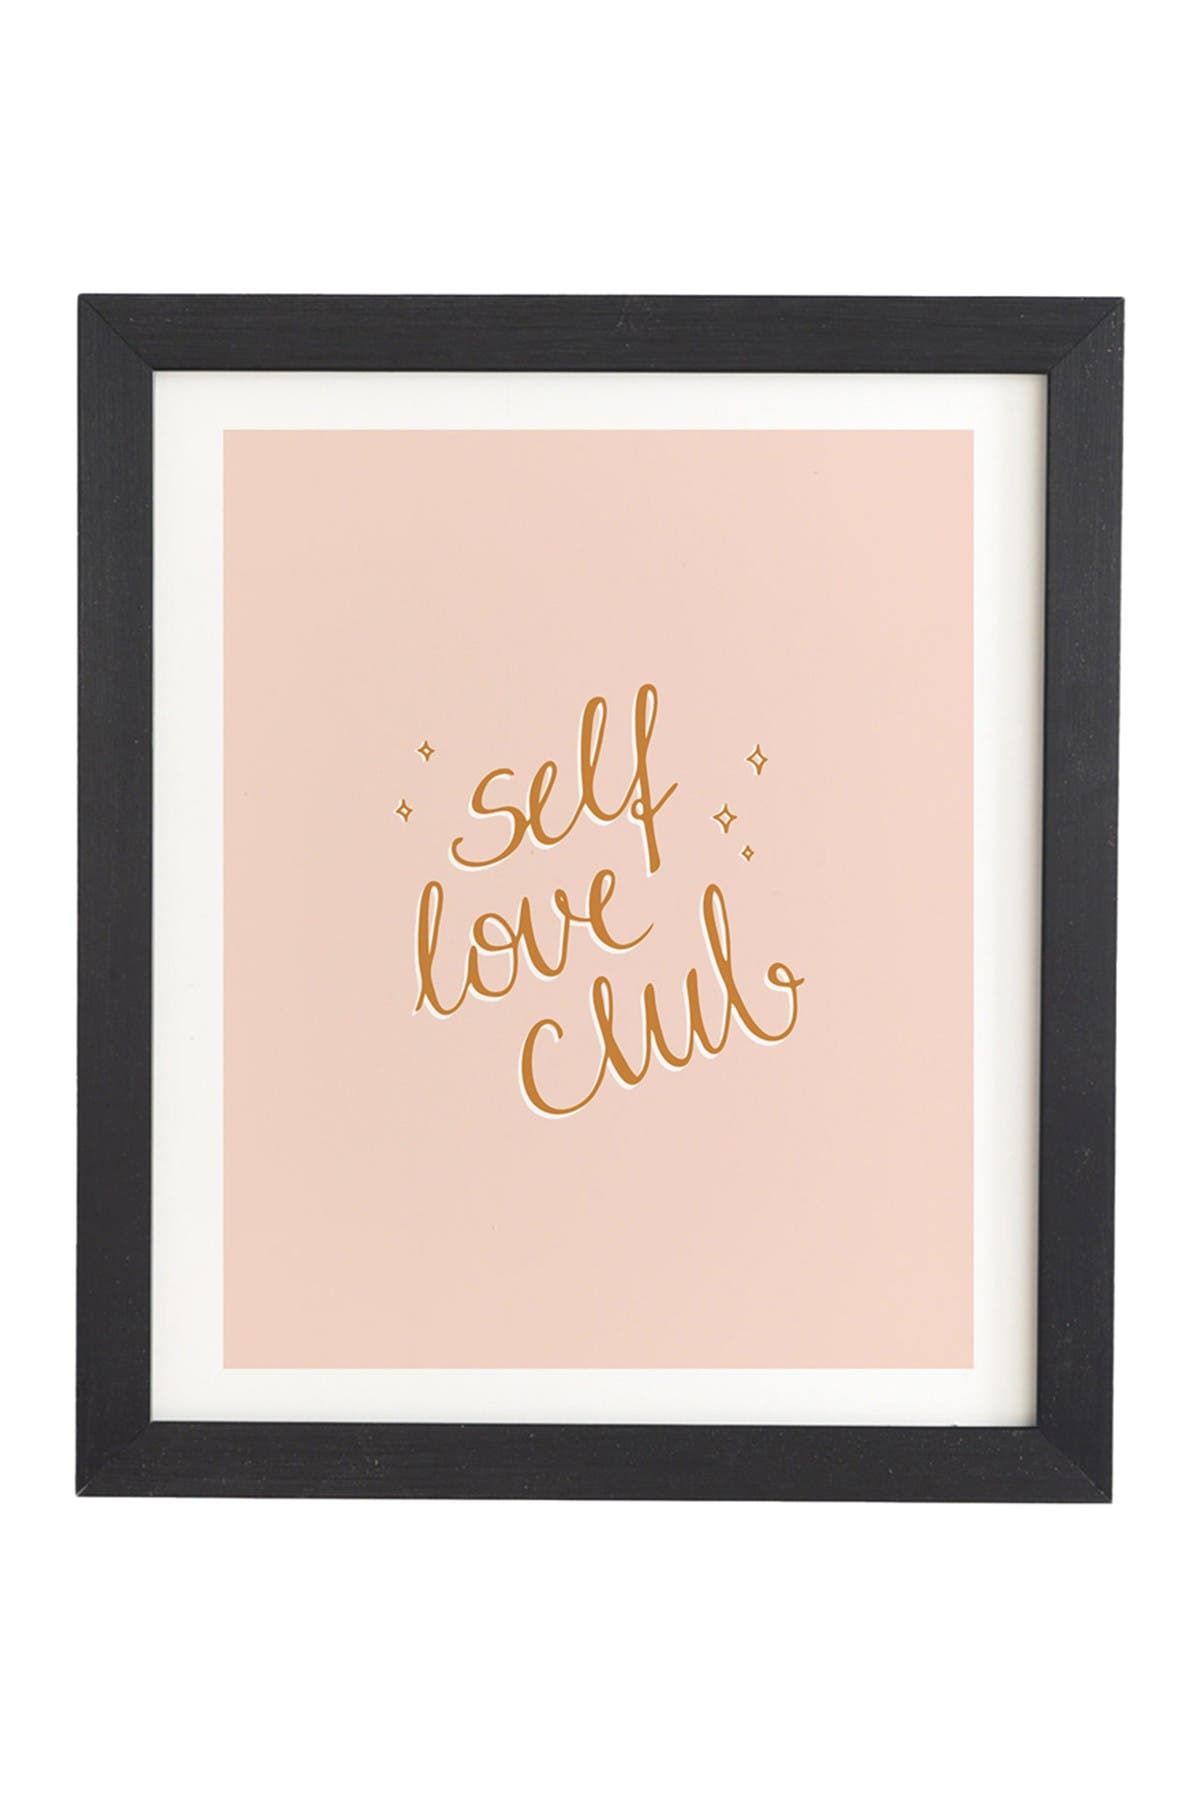 Image of Deny Designs Barlena Self Love Club Black Framed Art